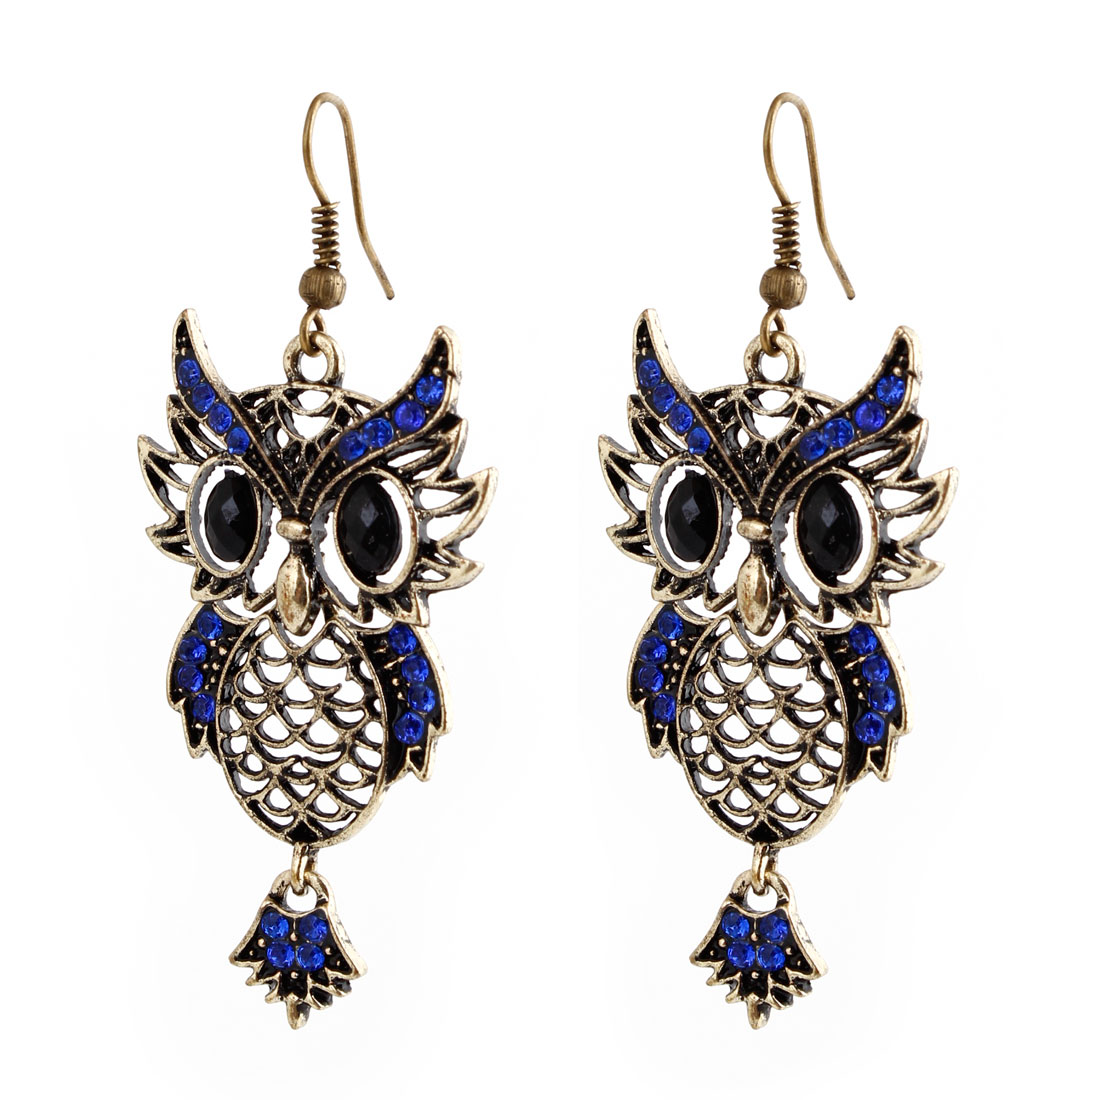 Pair Bronze Tone Blue Hollow Metal Owl Pendant Fish Hook Earrings for Lady